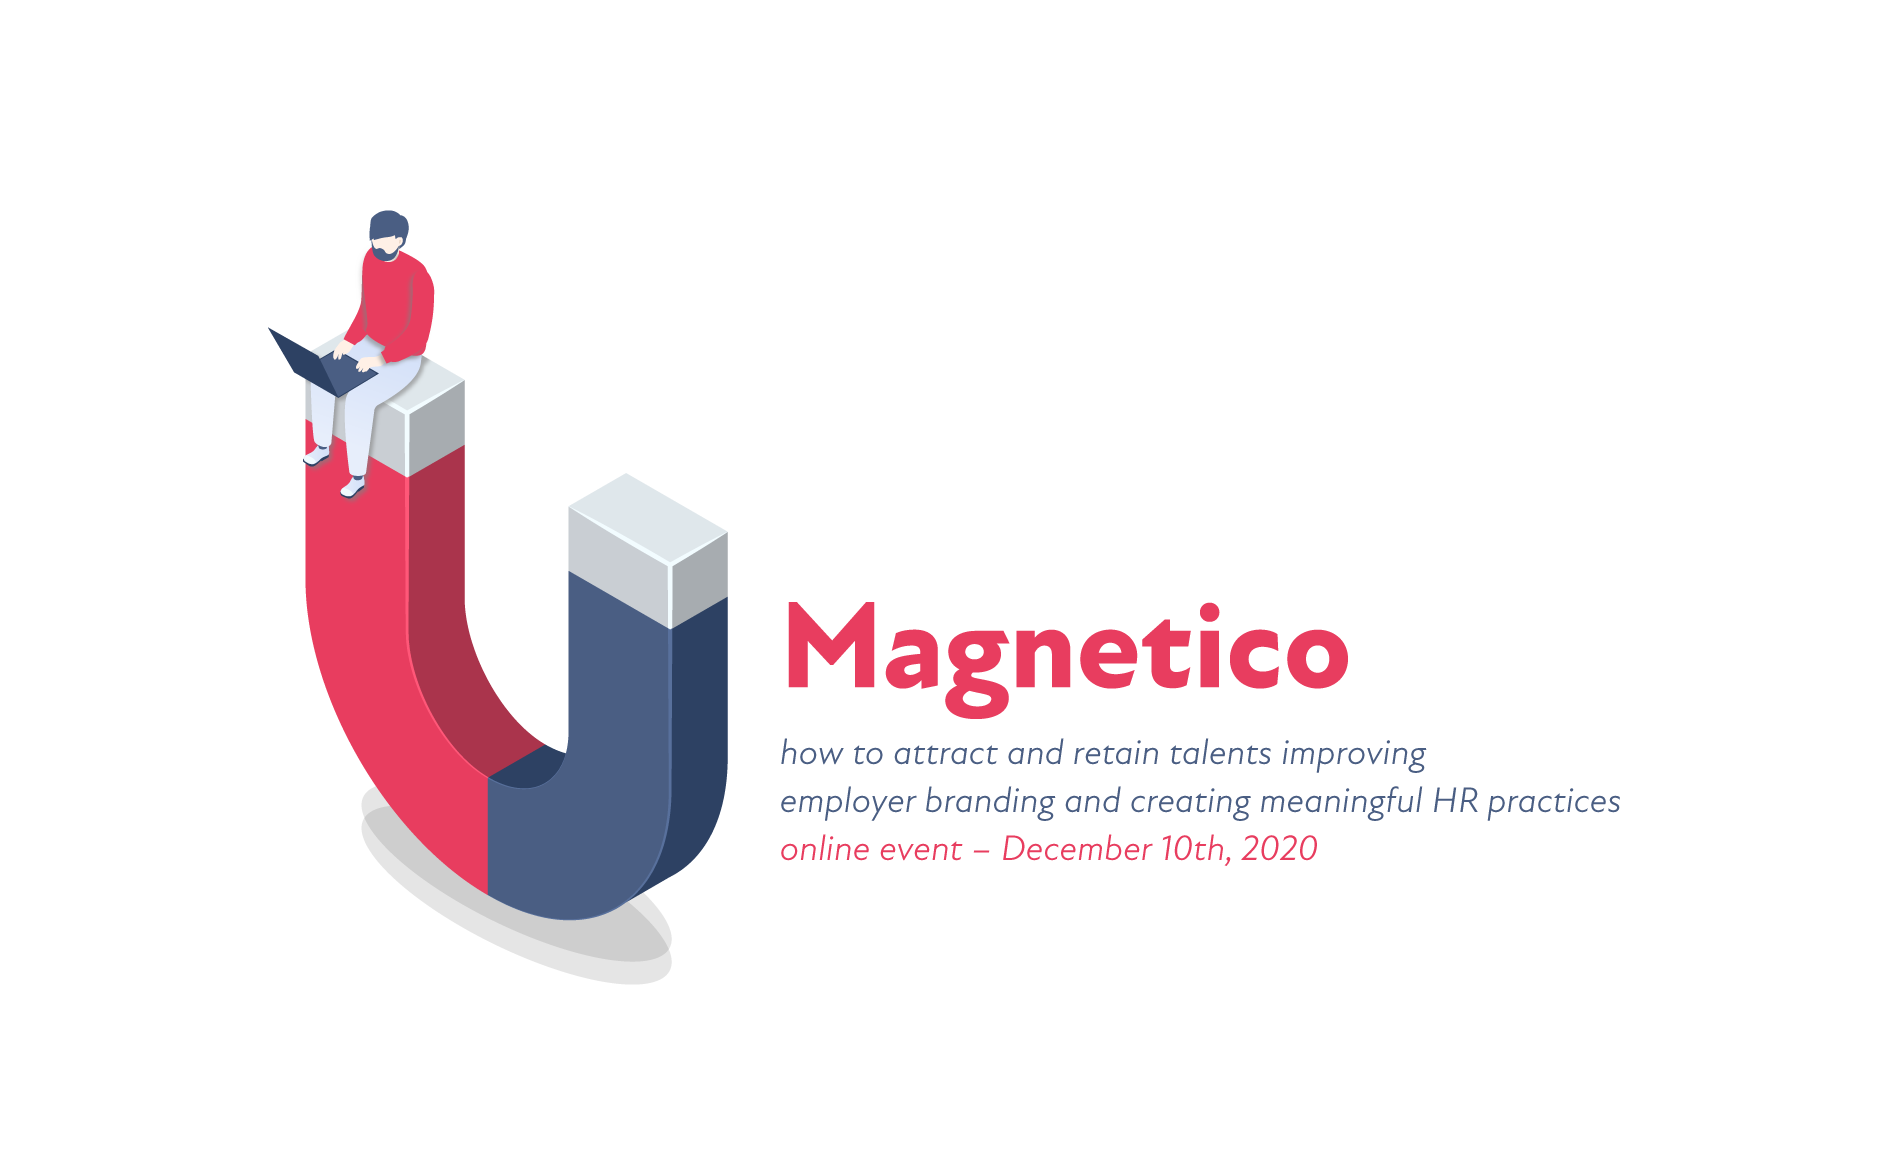 """Prima ediție a evenimentului """"Magnetico. How to attract and retain talents improving employer branding and creating meaningful HR practices"""""""